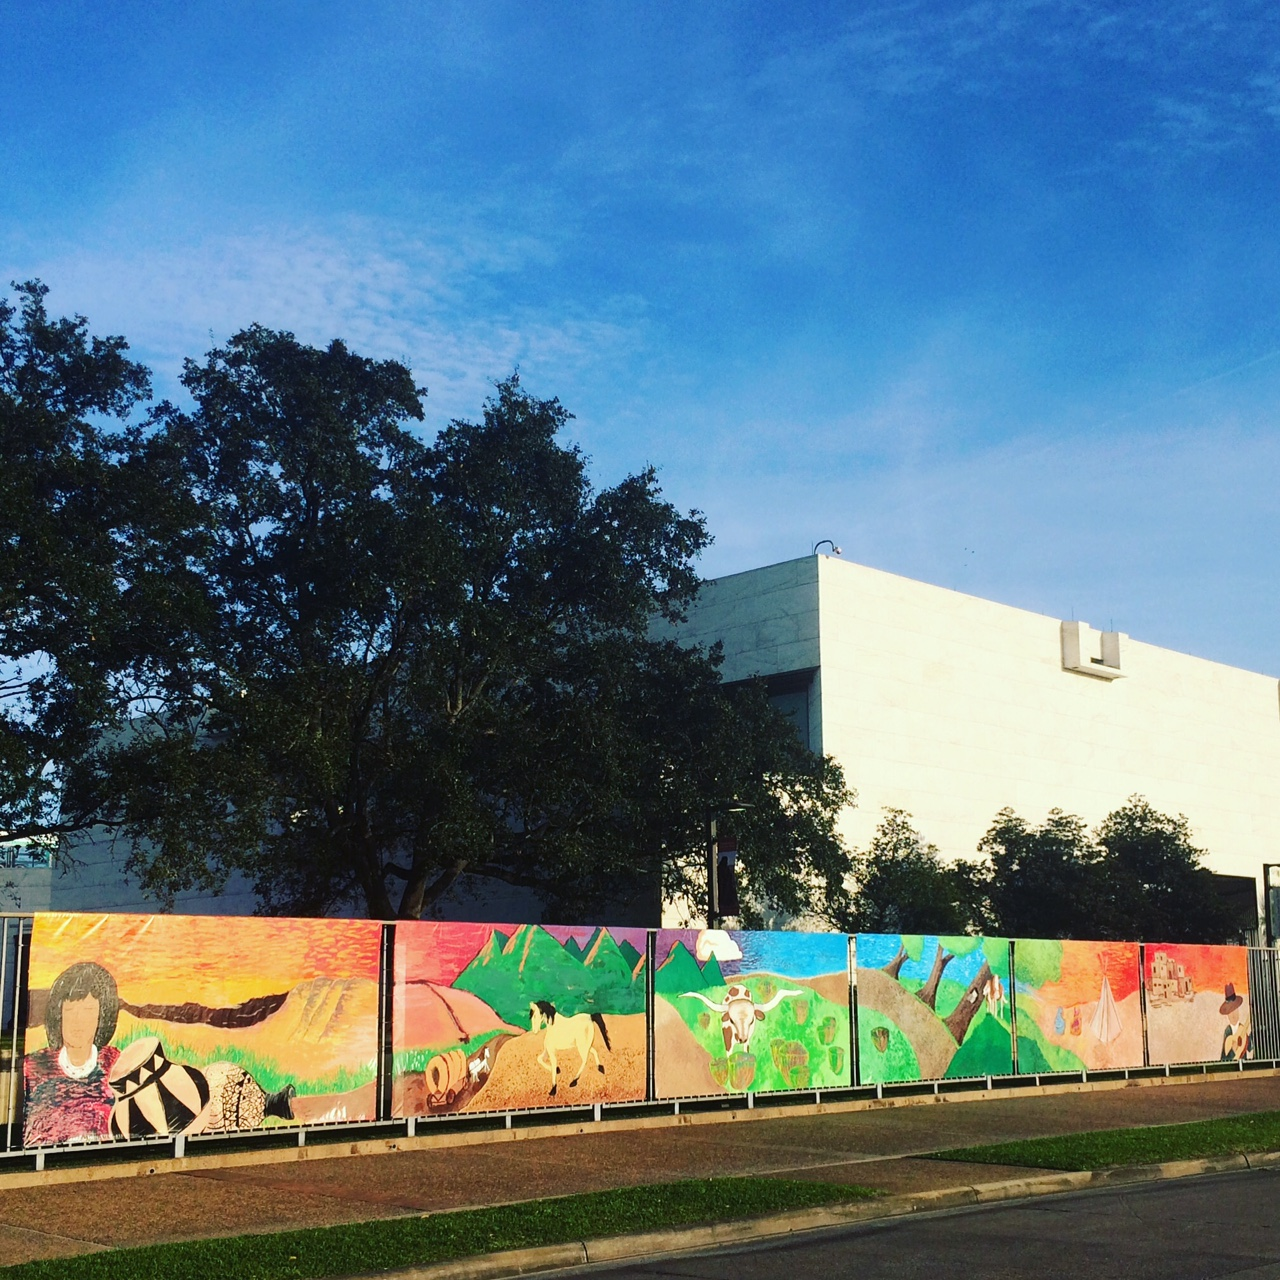 American West Community Kids Mural